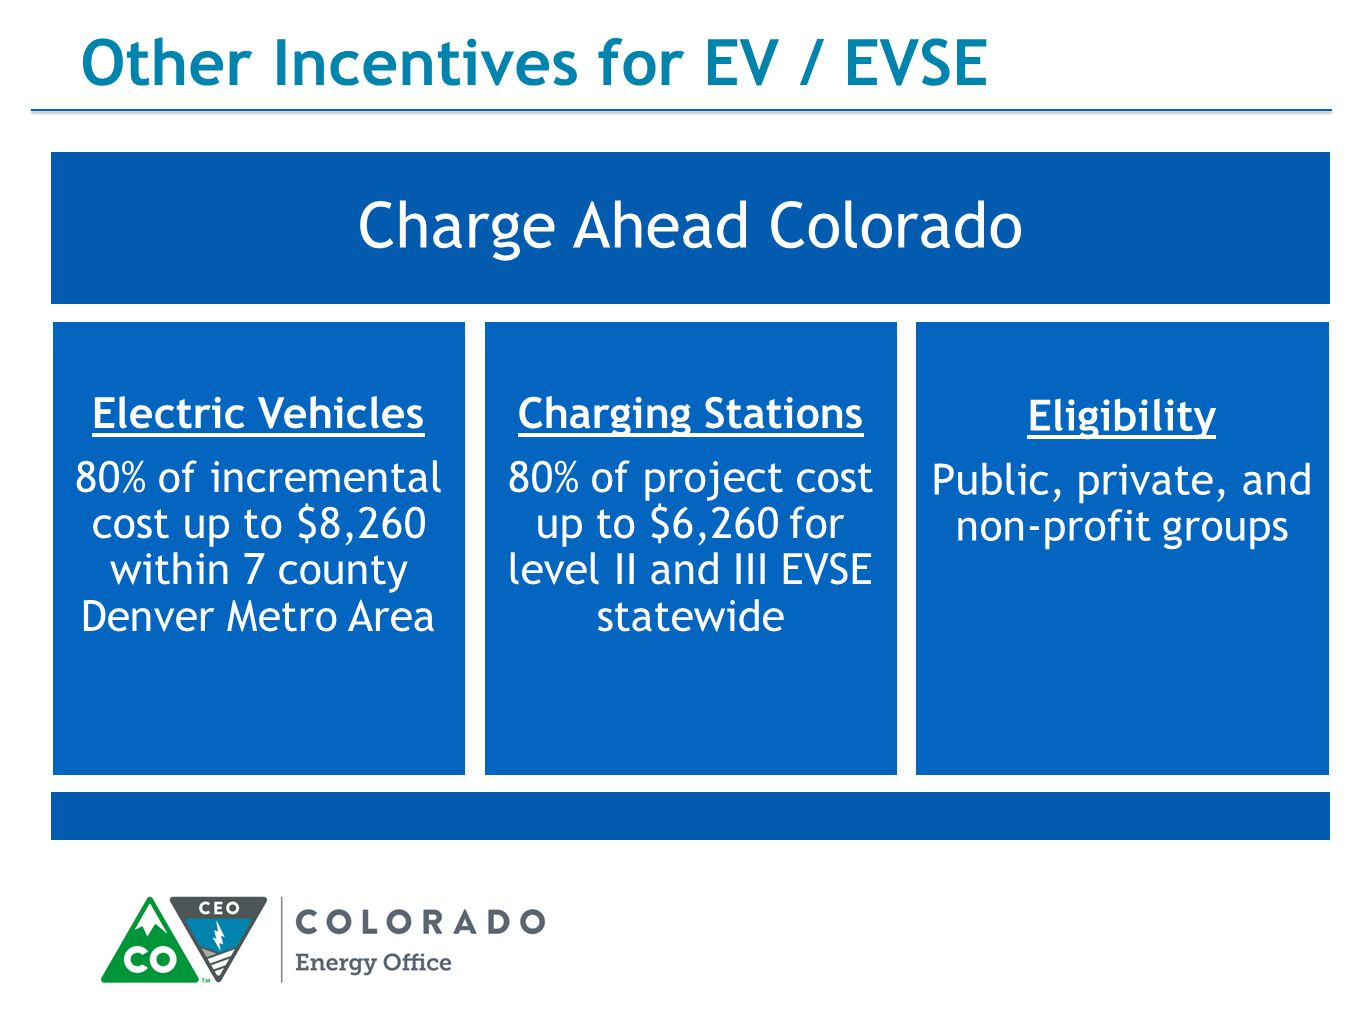 Charge Ahead Colorado Electric Vehicles 80% of incremental cost up to $8,260 within 7 county Denver Metro Area Charging Stations 80% of project cost up to $6,260 for level II and III EVSE statewide Eligibility Public, private, and non-profit groups Other Incentives for EV / EVSE